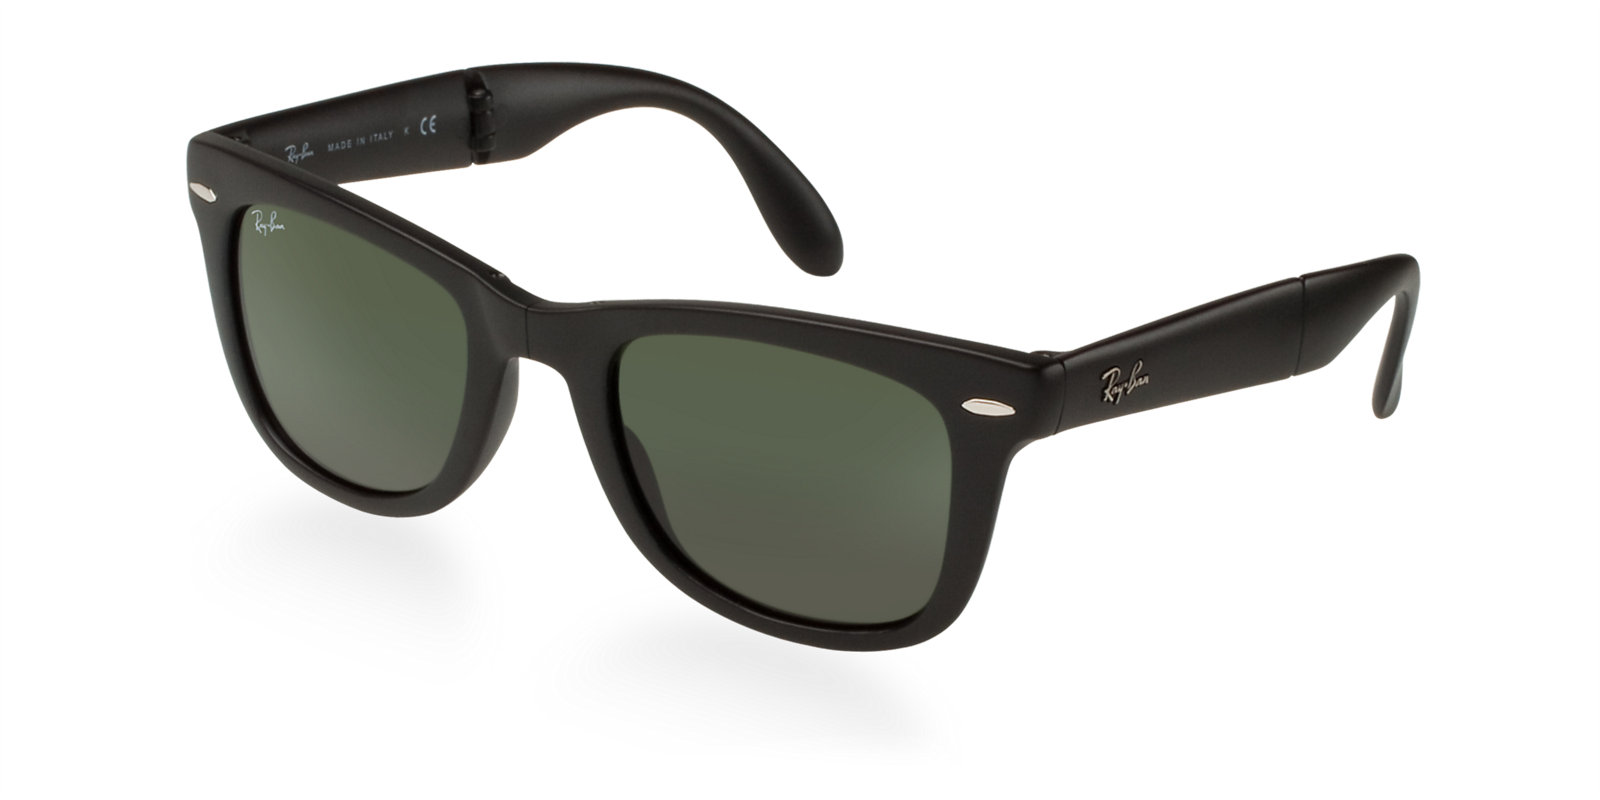 d983ab841a Previous  Next. Previous  Next. RAY-BAN RB4105 601S MATTE BLACK FOLDING  WAYFARER SUNGLASSES